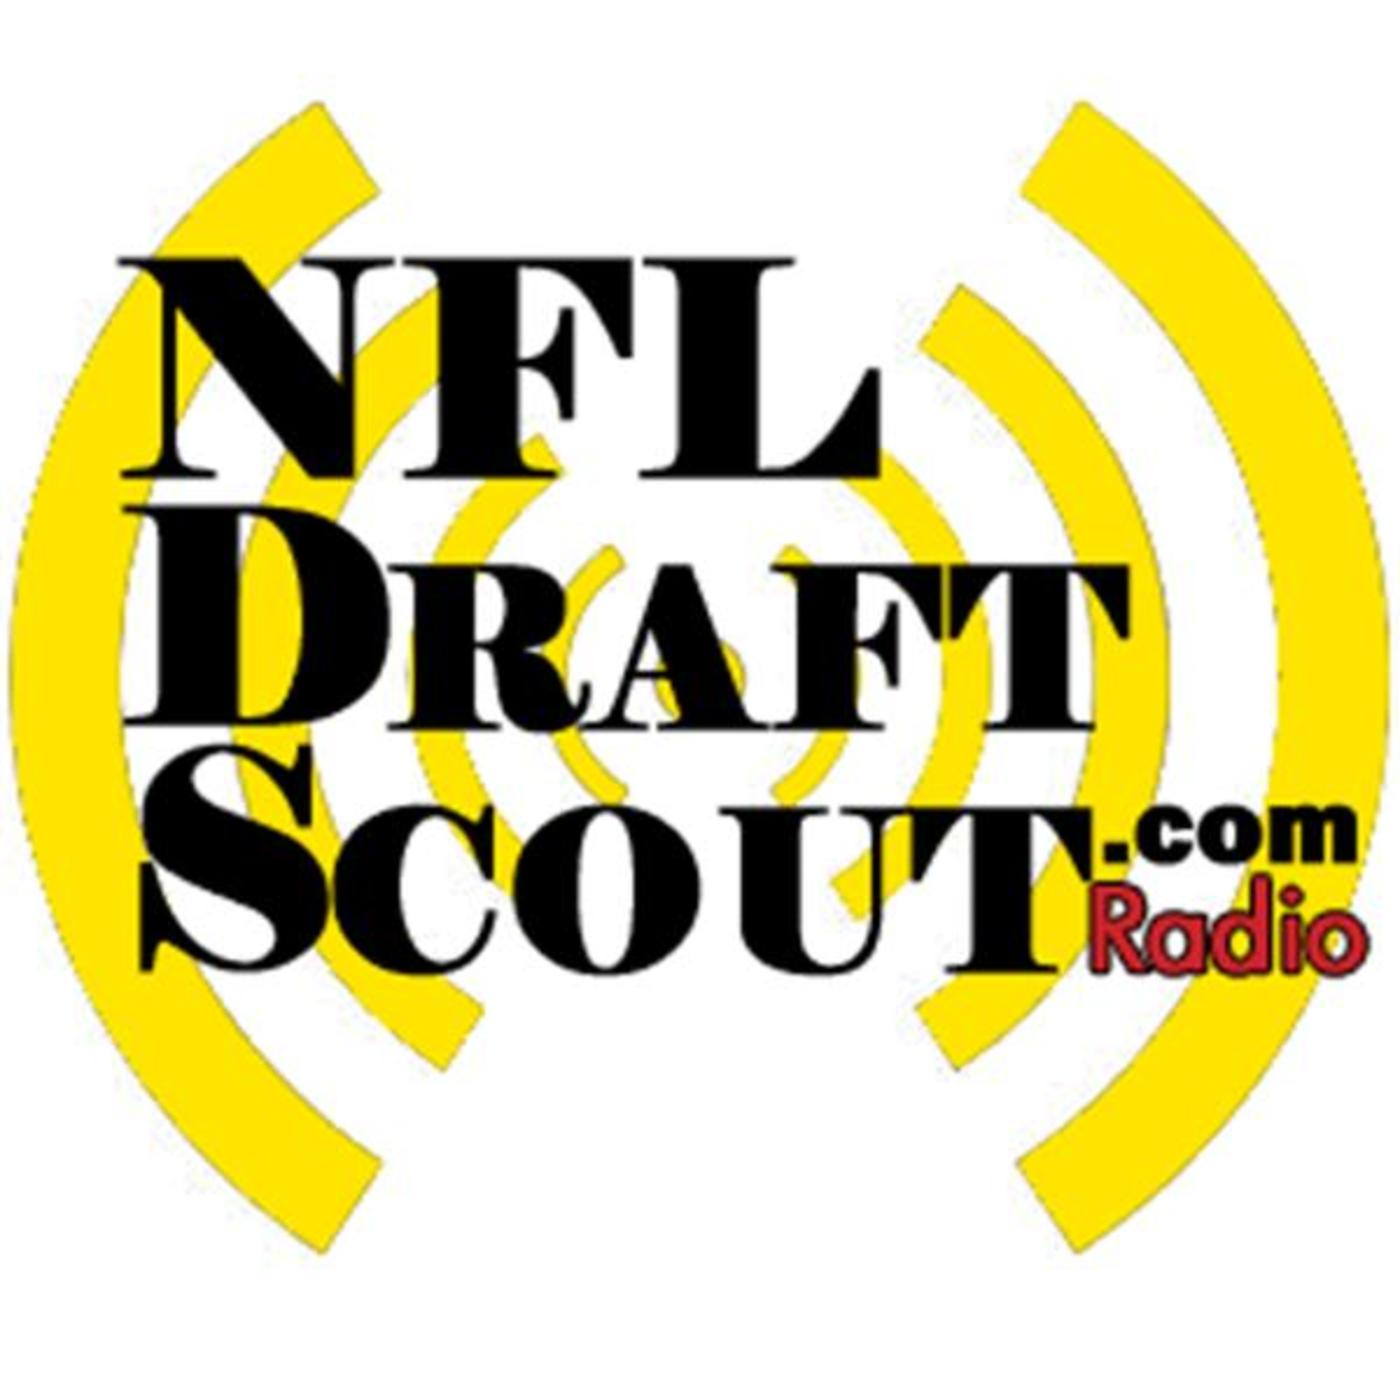 NFLDraftScout.com Radio